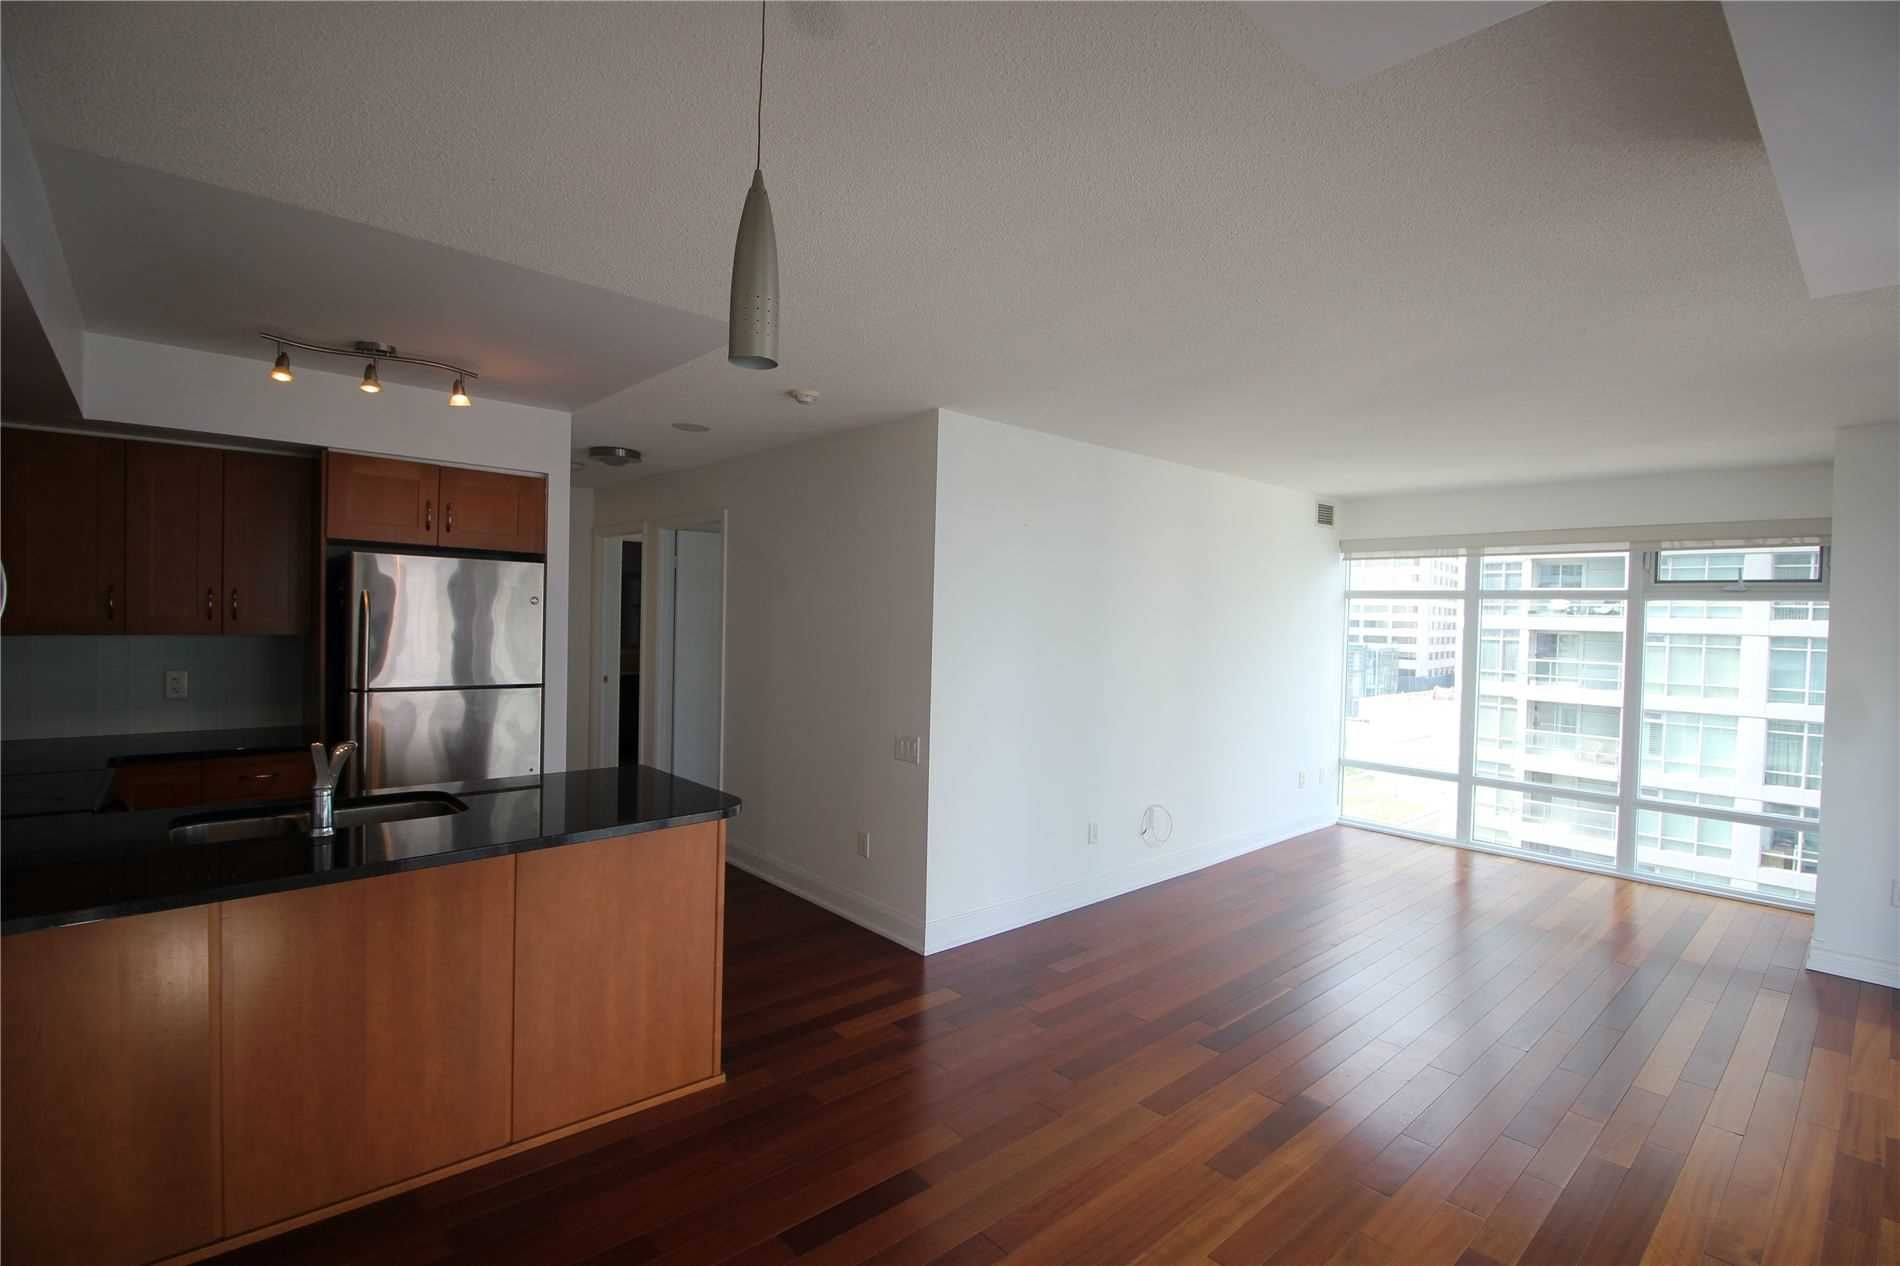 2181 Yonge St, unit 1111 for rent in Toronto - image #2